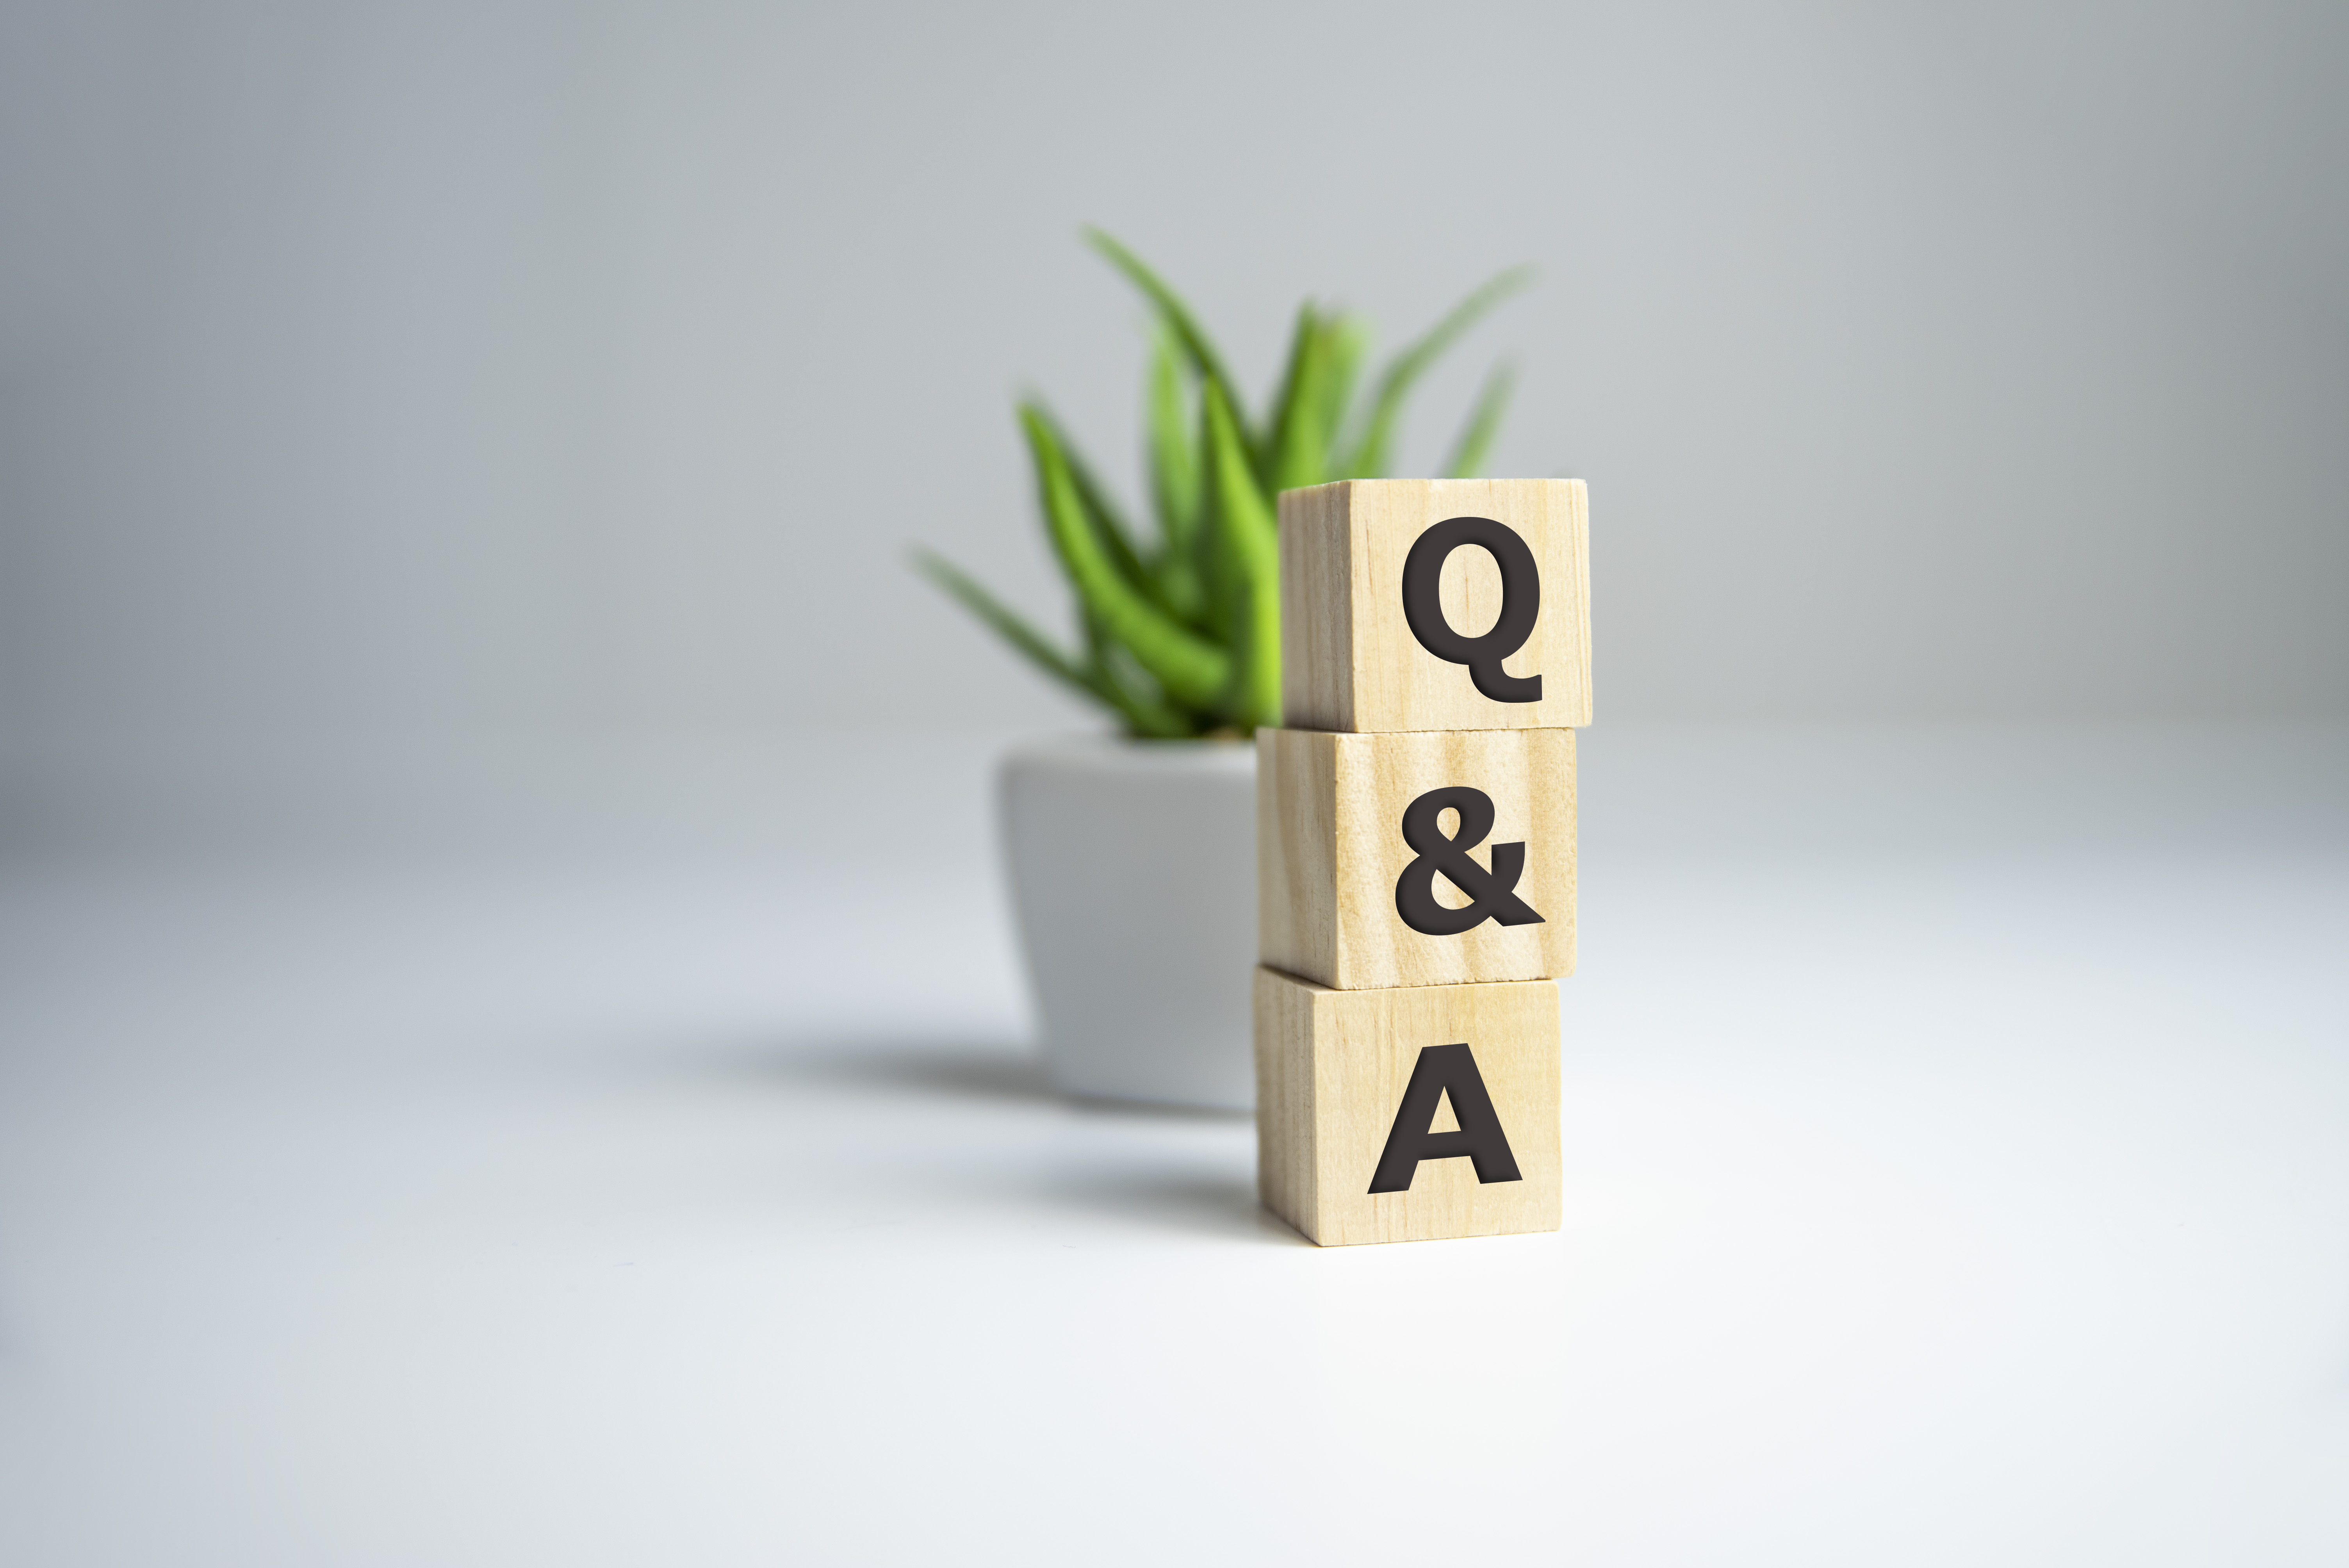 Q A or Questions and answers on black block with sunshine background